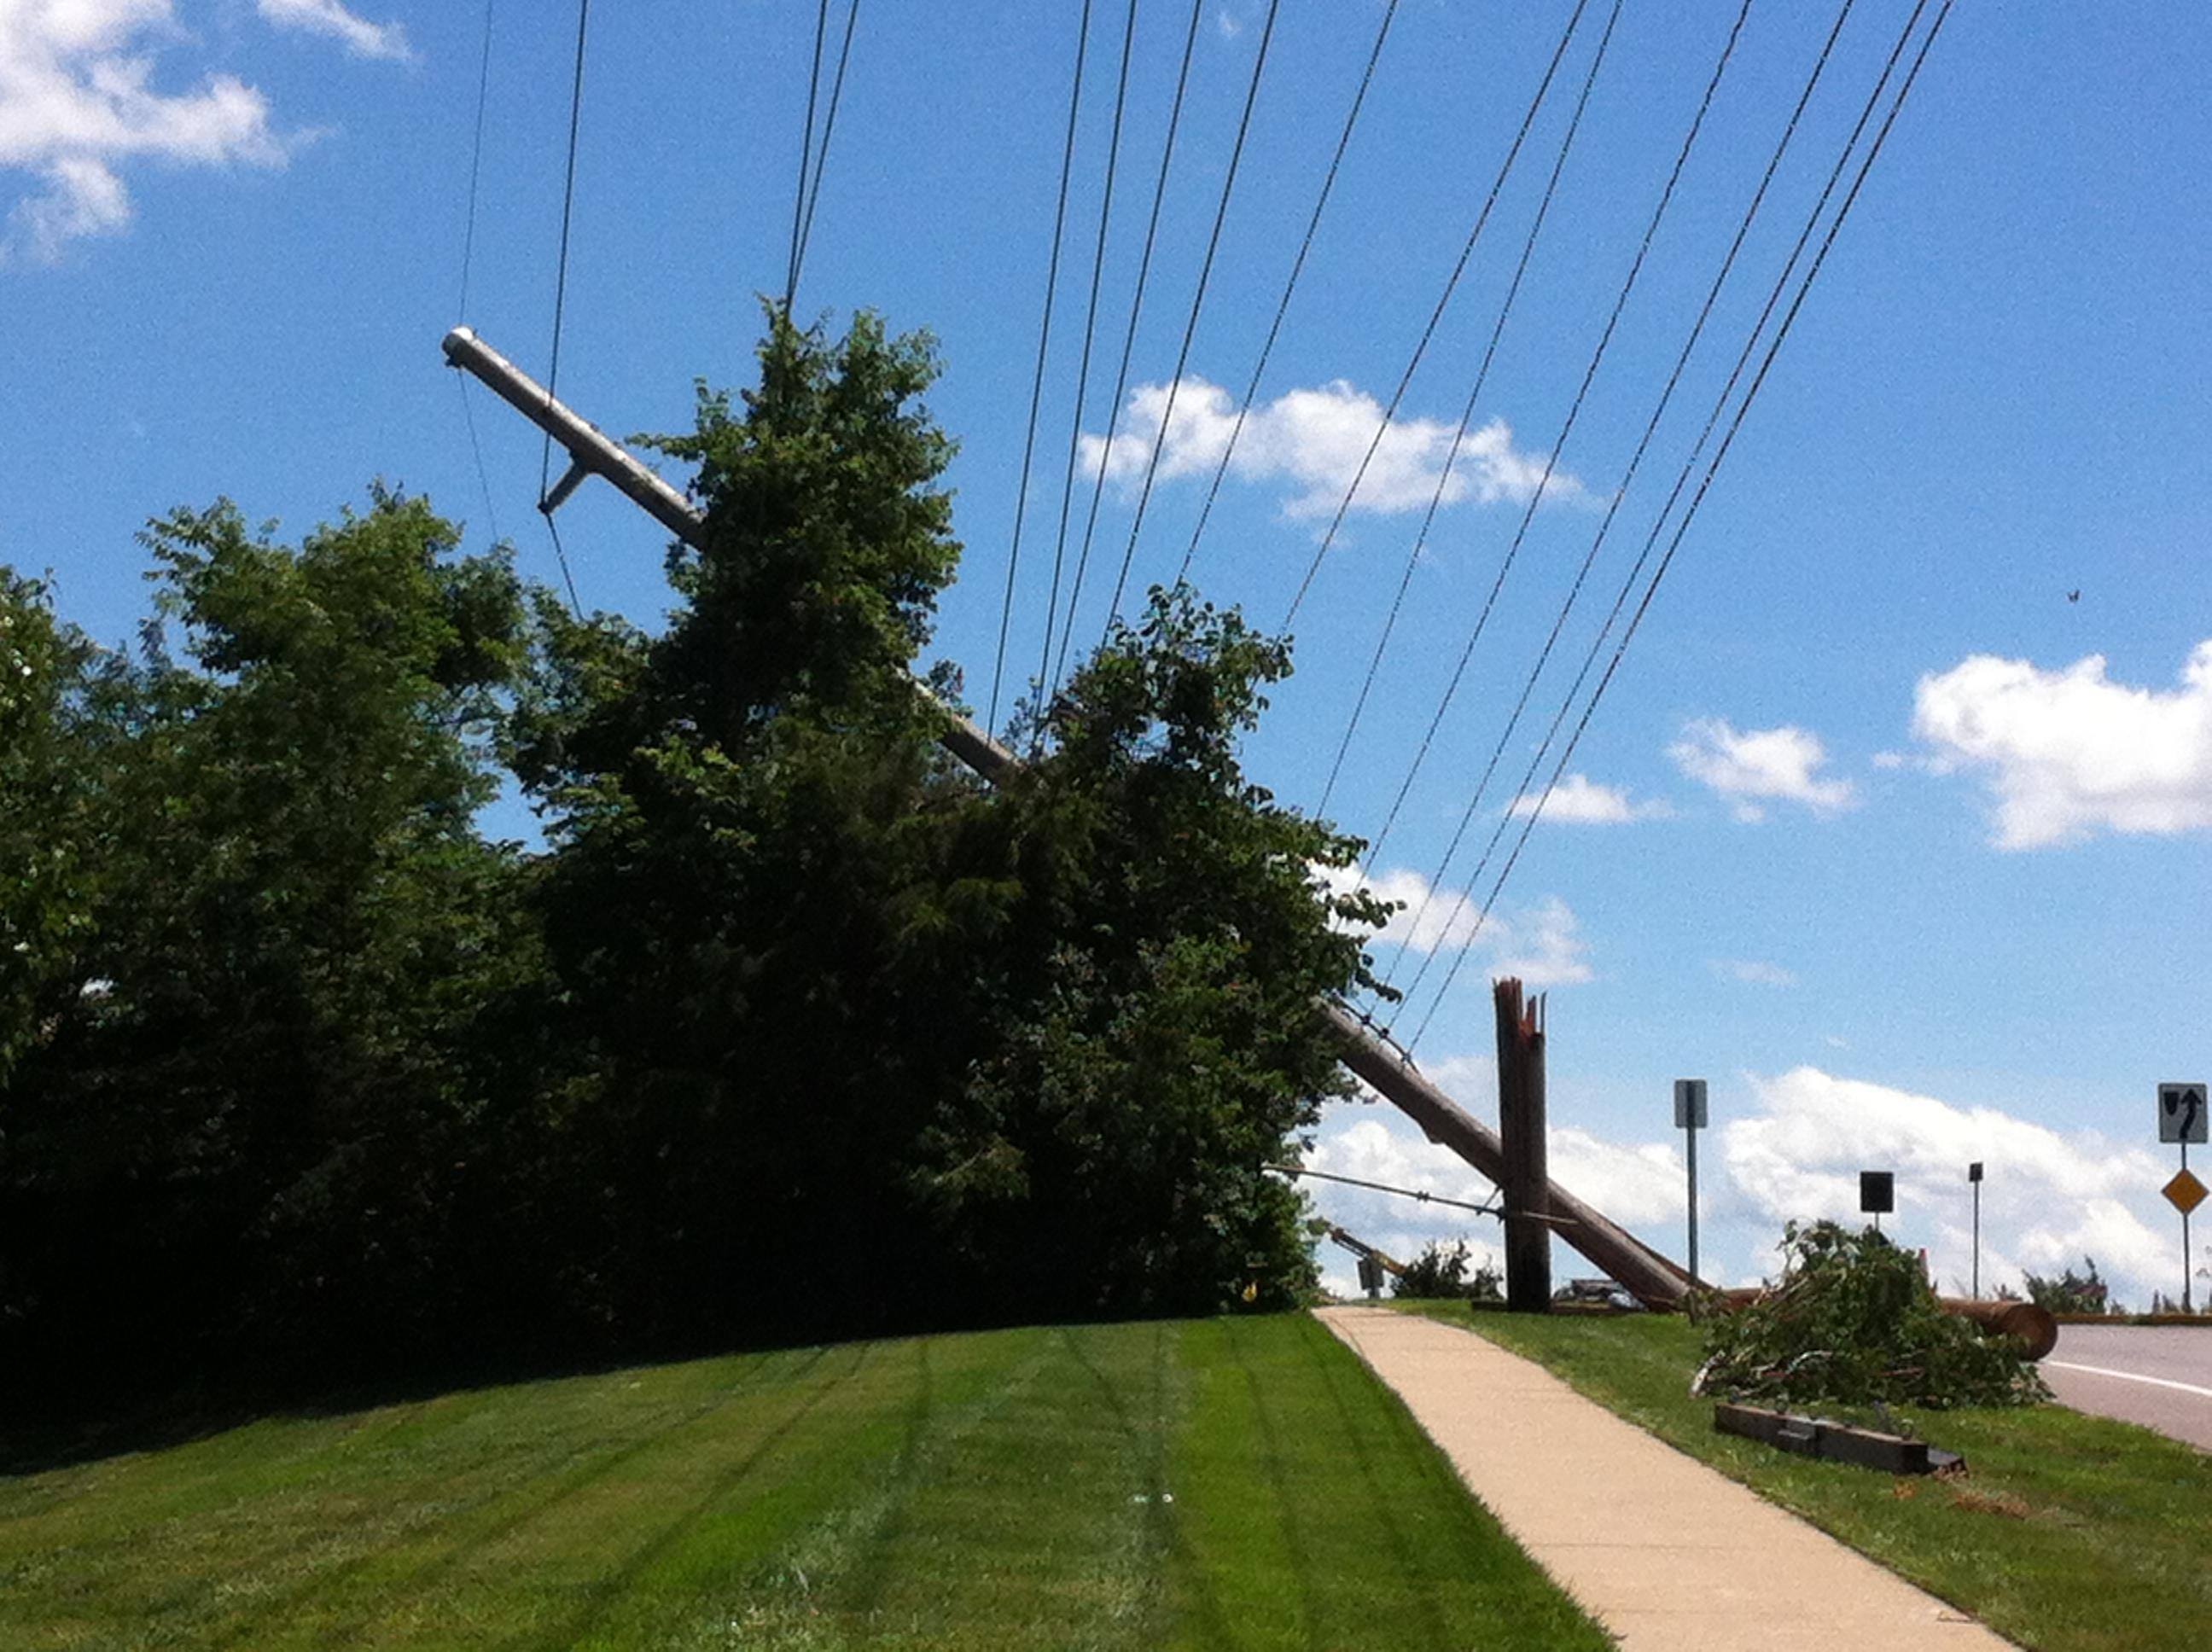 Power lines tangled and snapped throughout Columbia, but MBS was unaffected for the 3.5 hours it would have been without power. Many homes — and some trees on MBS property — weren't so lucky.